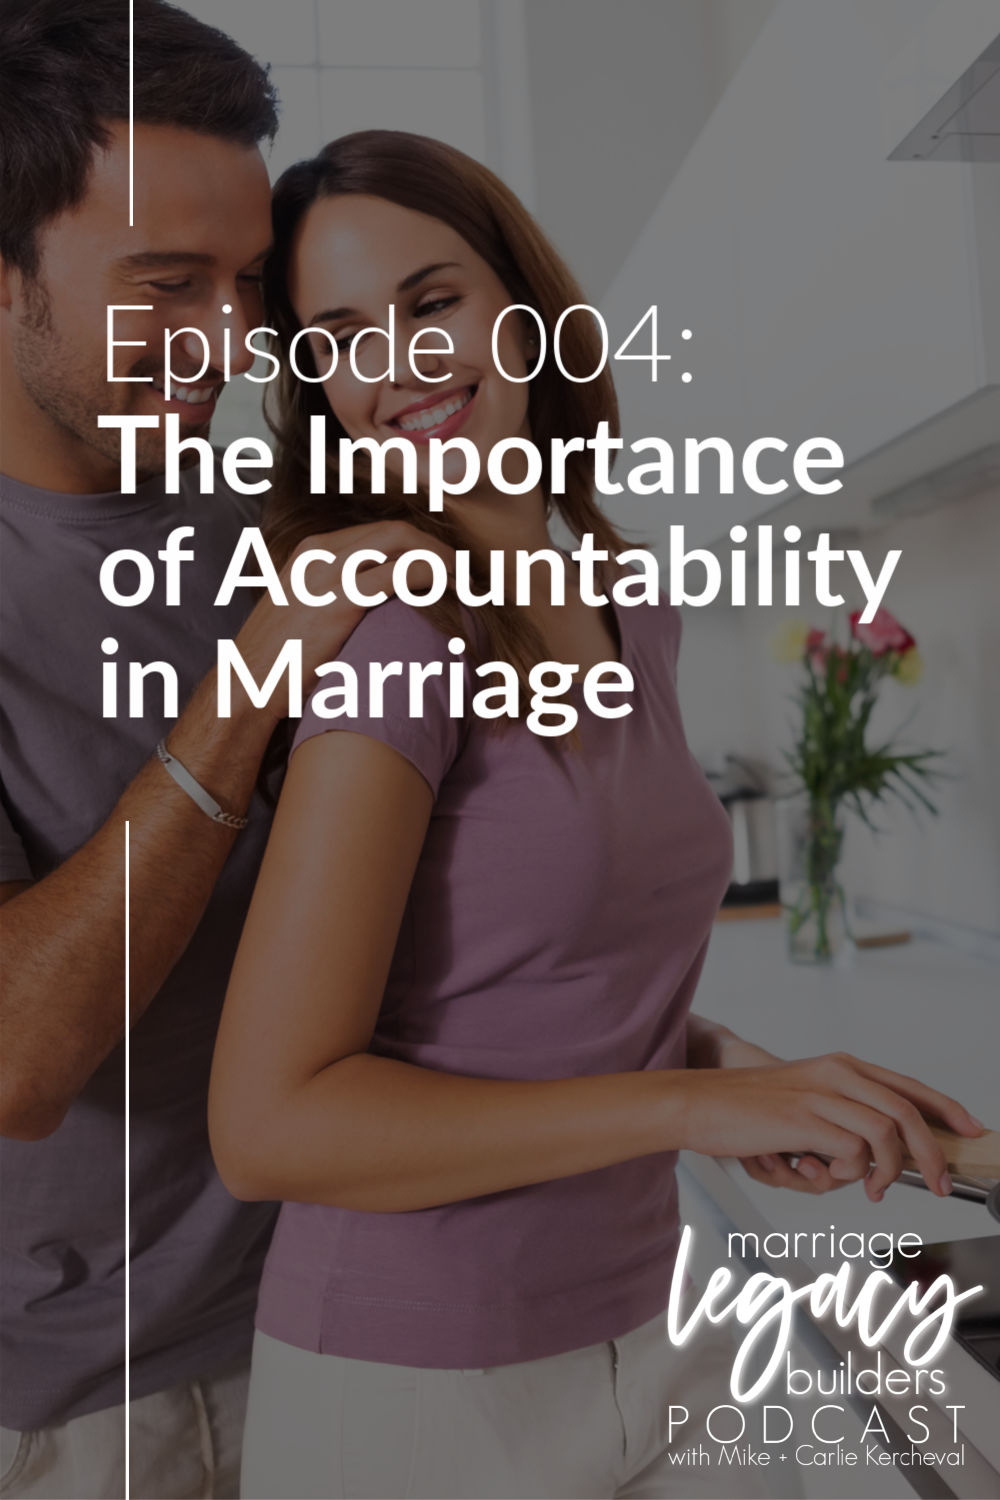 Episode 004: The Importance of Accountability in Marriage | ChristianMarriageAdventure.com/podcast